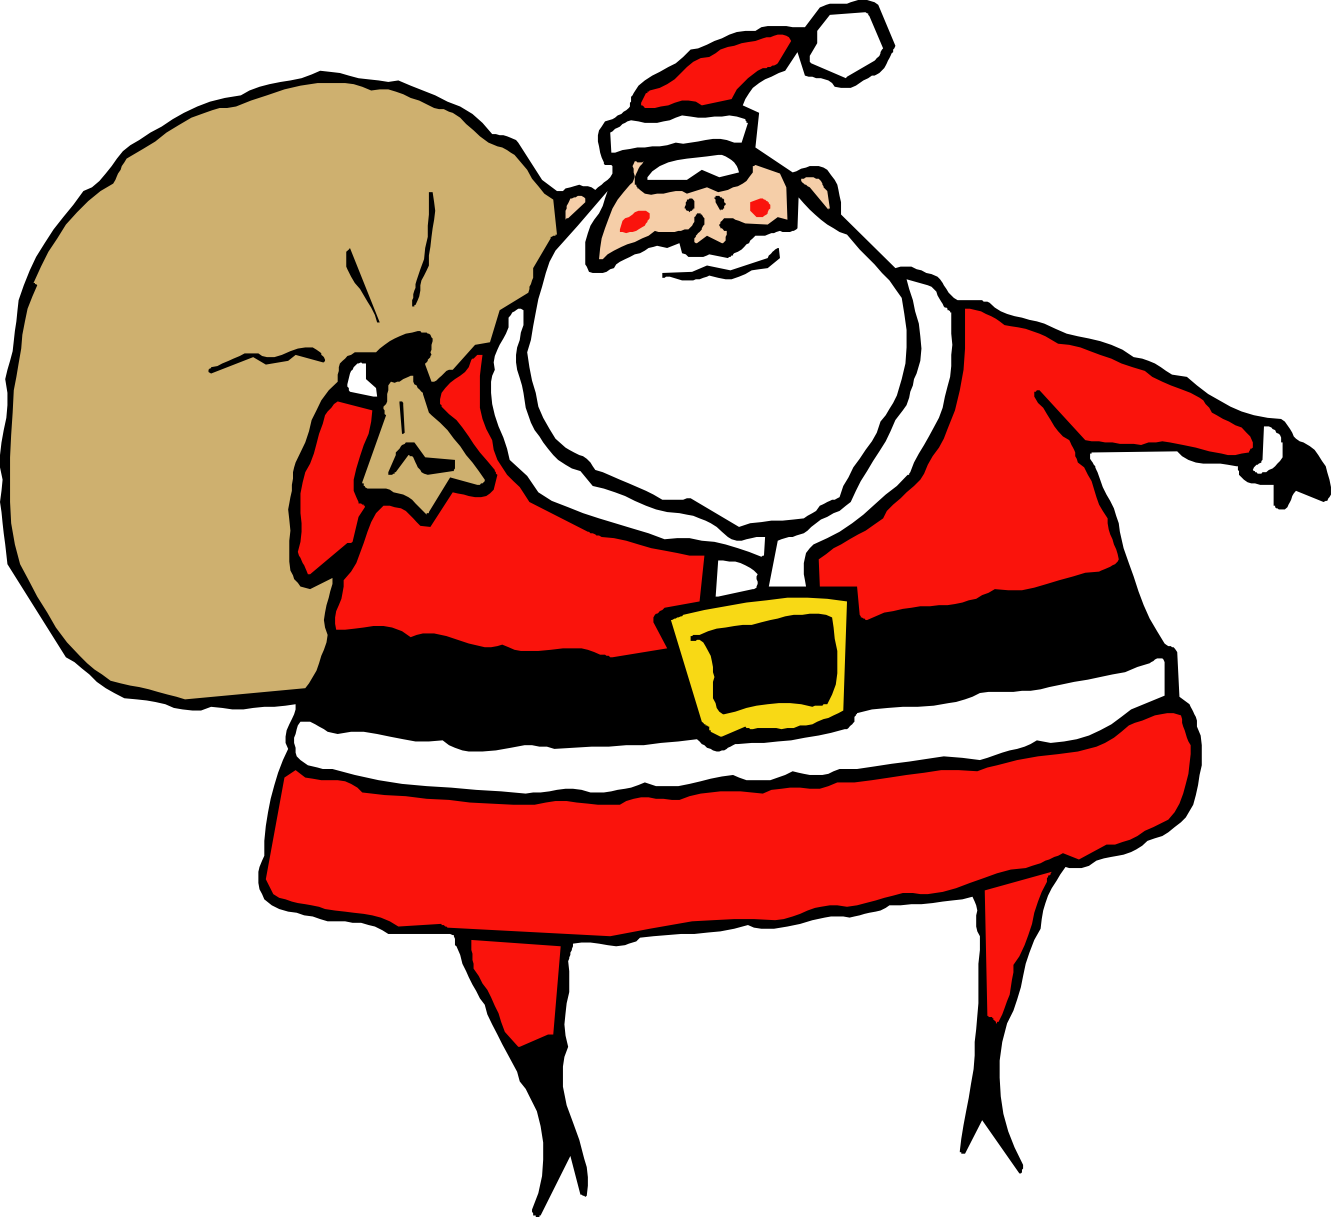 Santas list clipart graphic free stock Christmas Clipart Santa Claus at GetDrawings.com | Free for personal ... graphic free stock